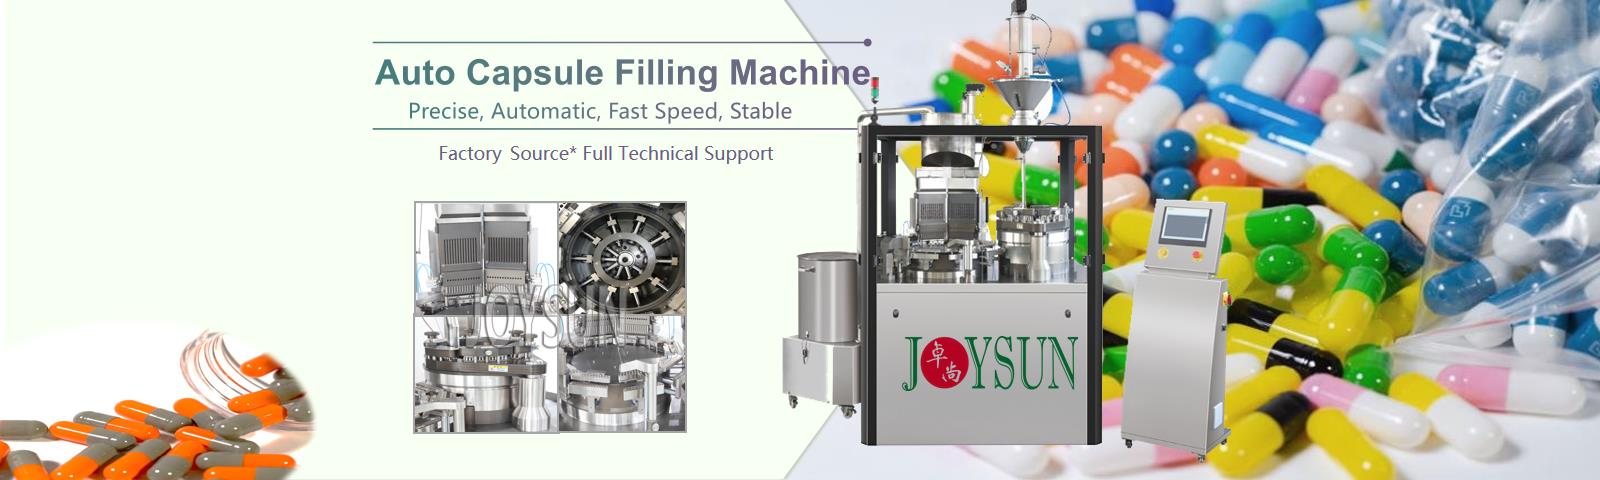 auto-capsule-filling-machine